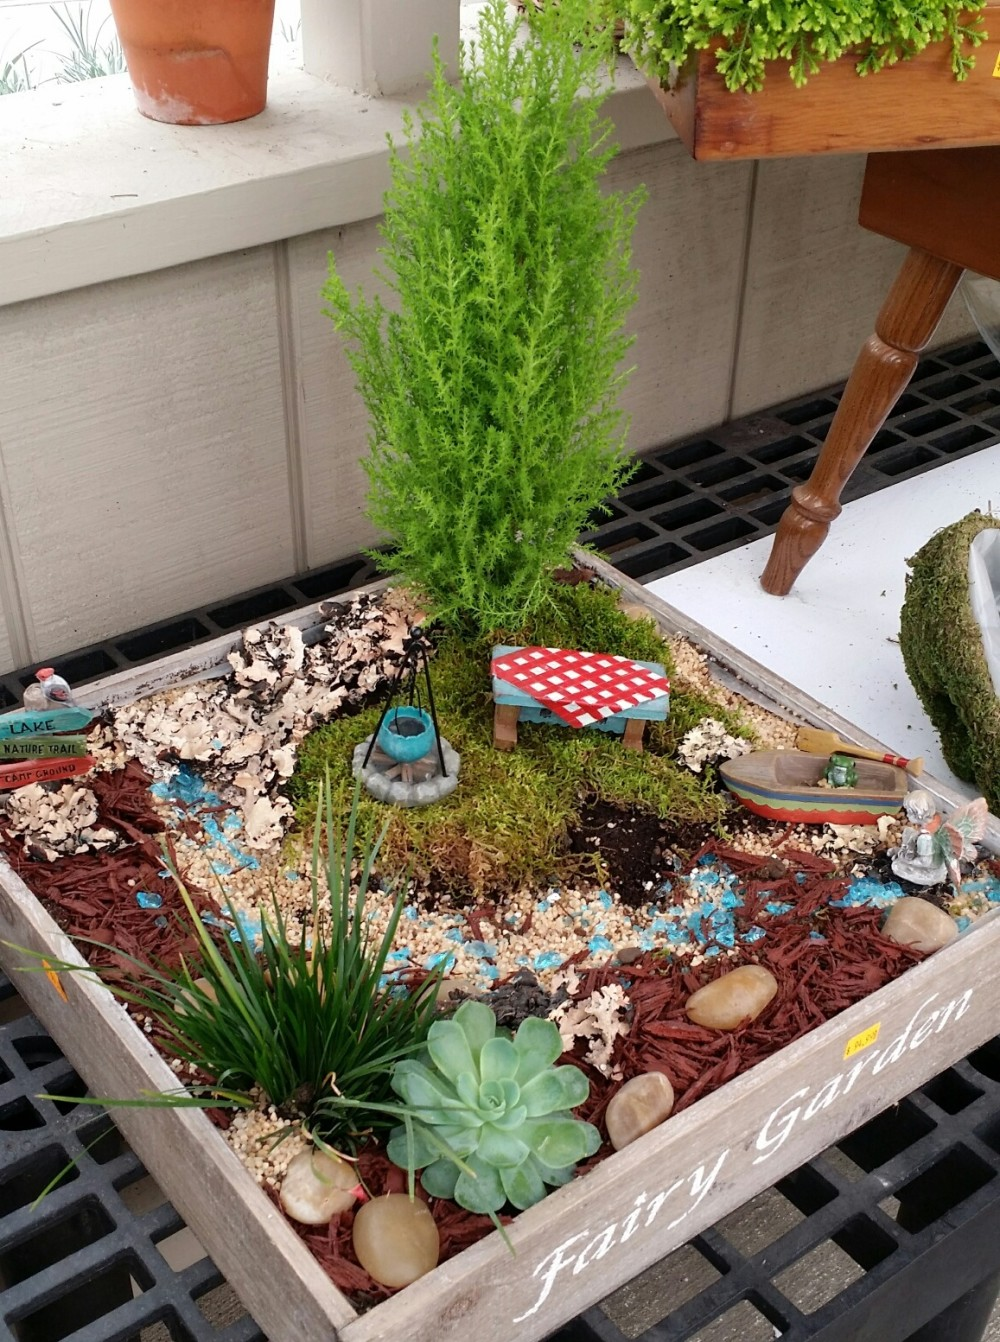 Garden Projects For Kids Miniature Lands For Little Hands